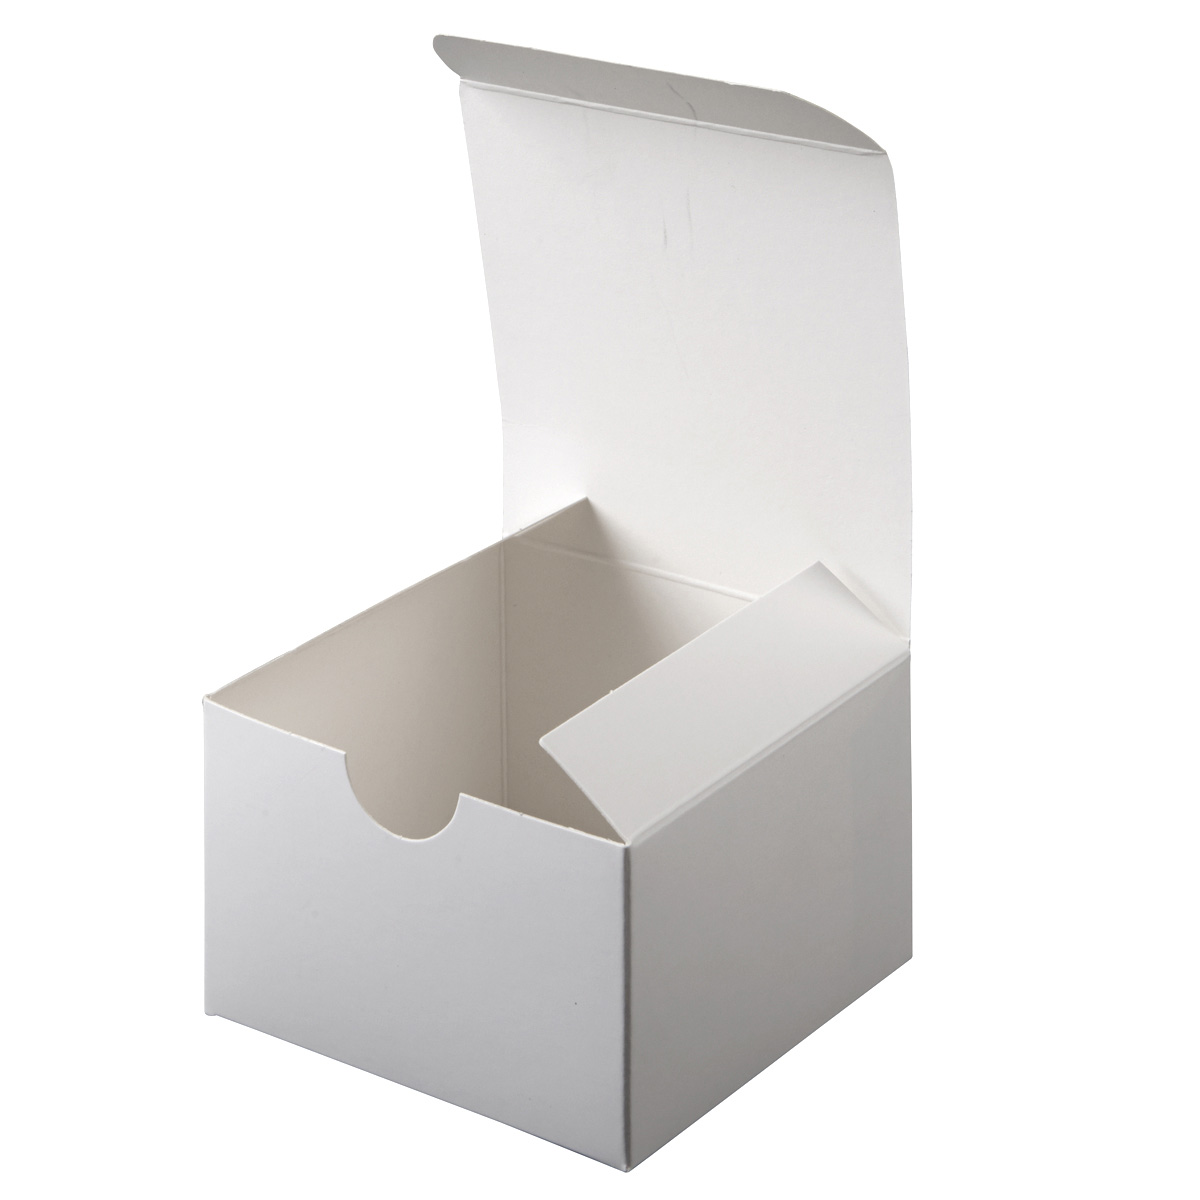 Michaels Brown Favor Boxes : Celebrate it gift box white